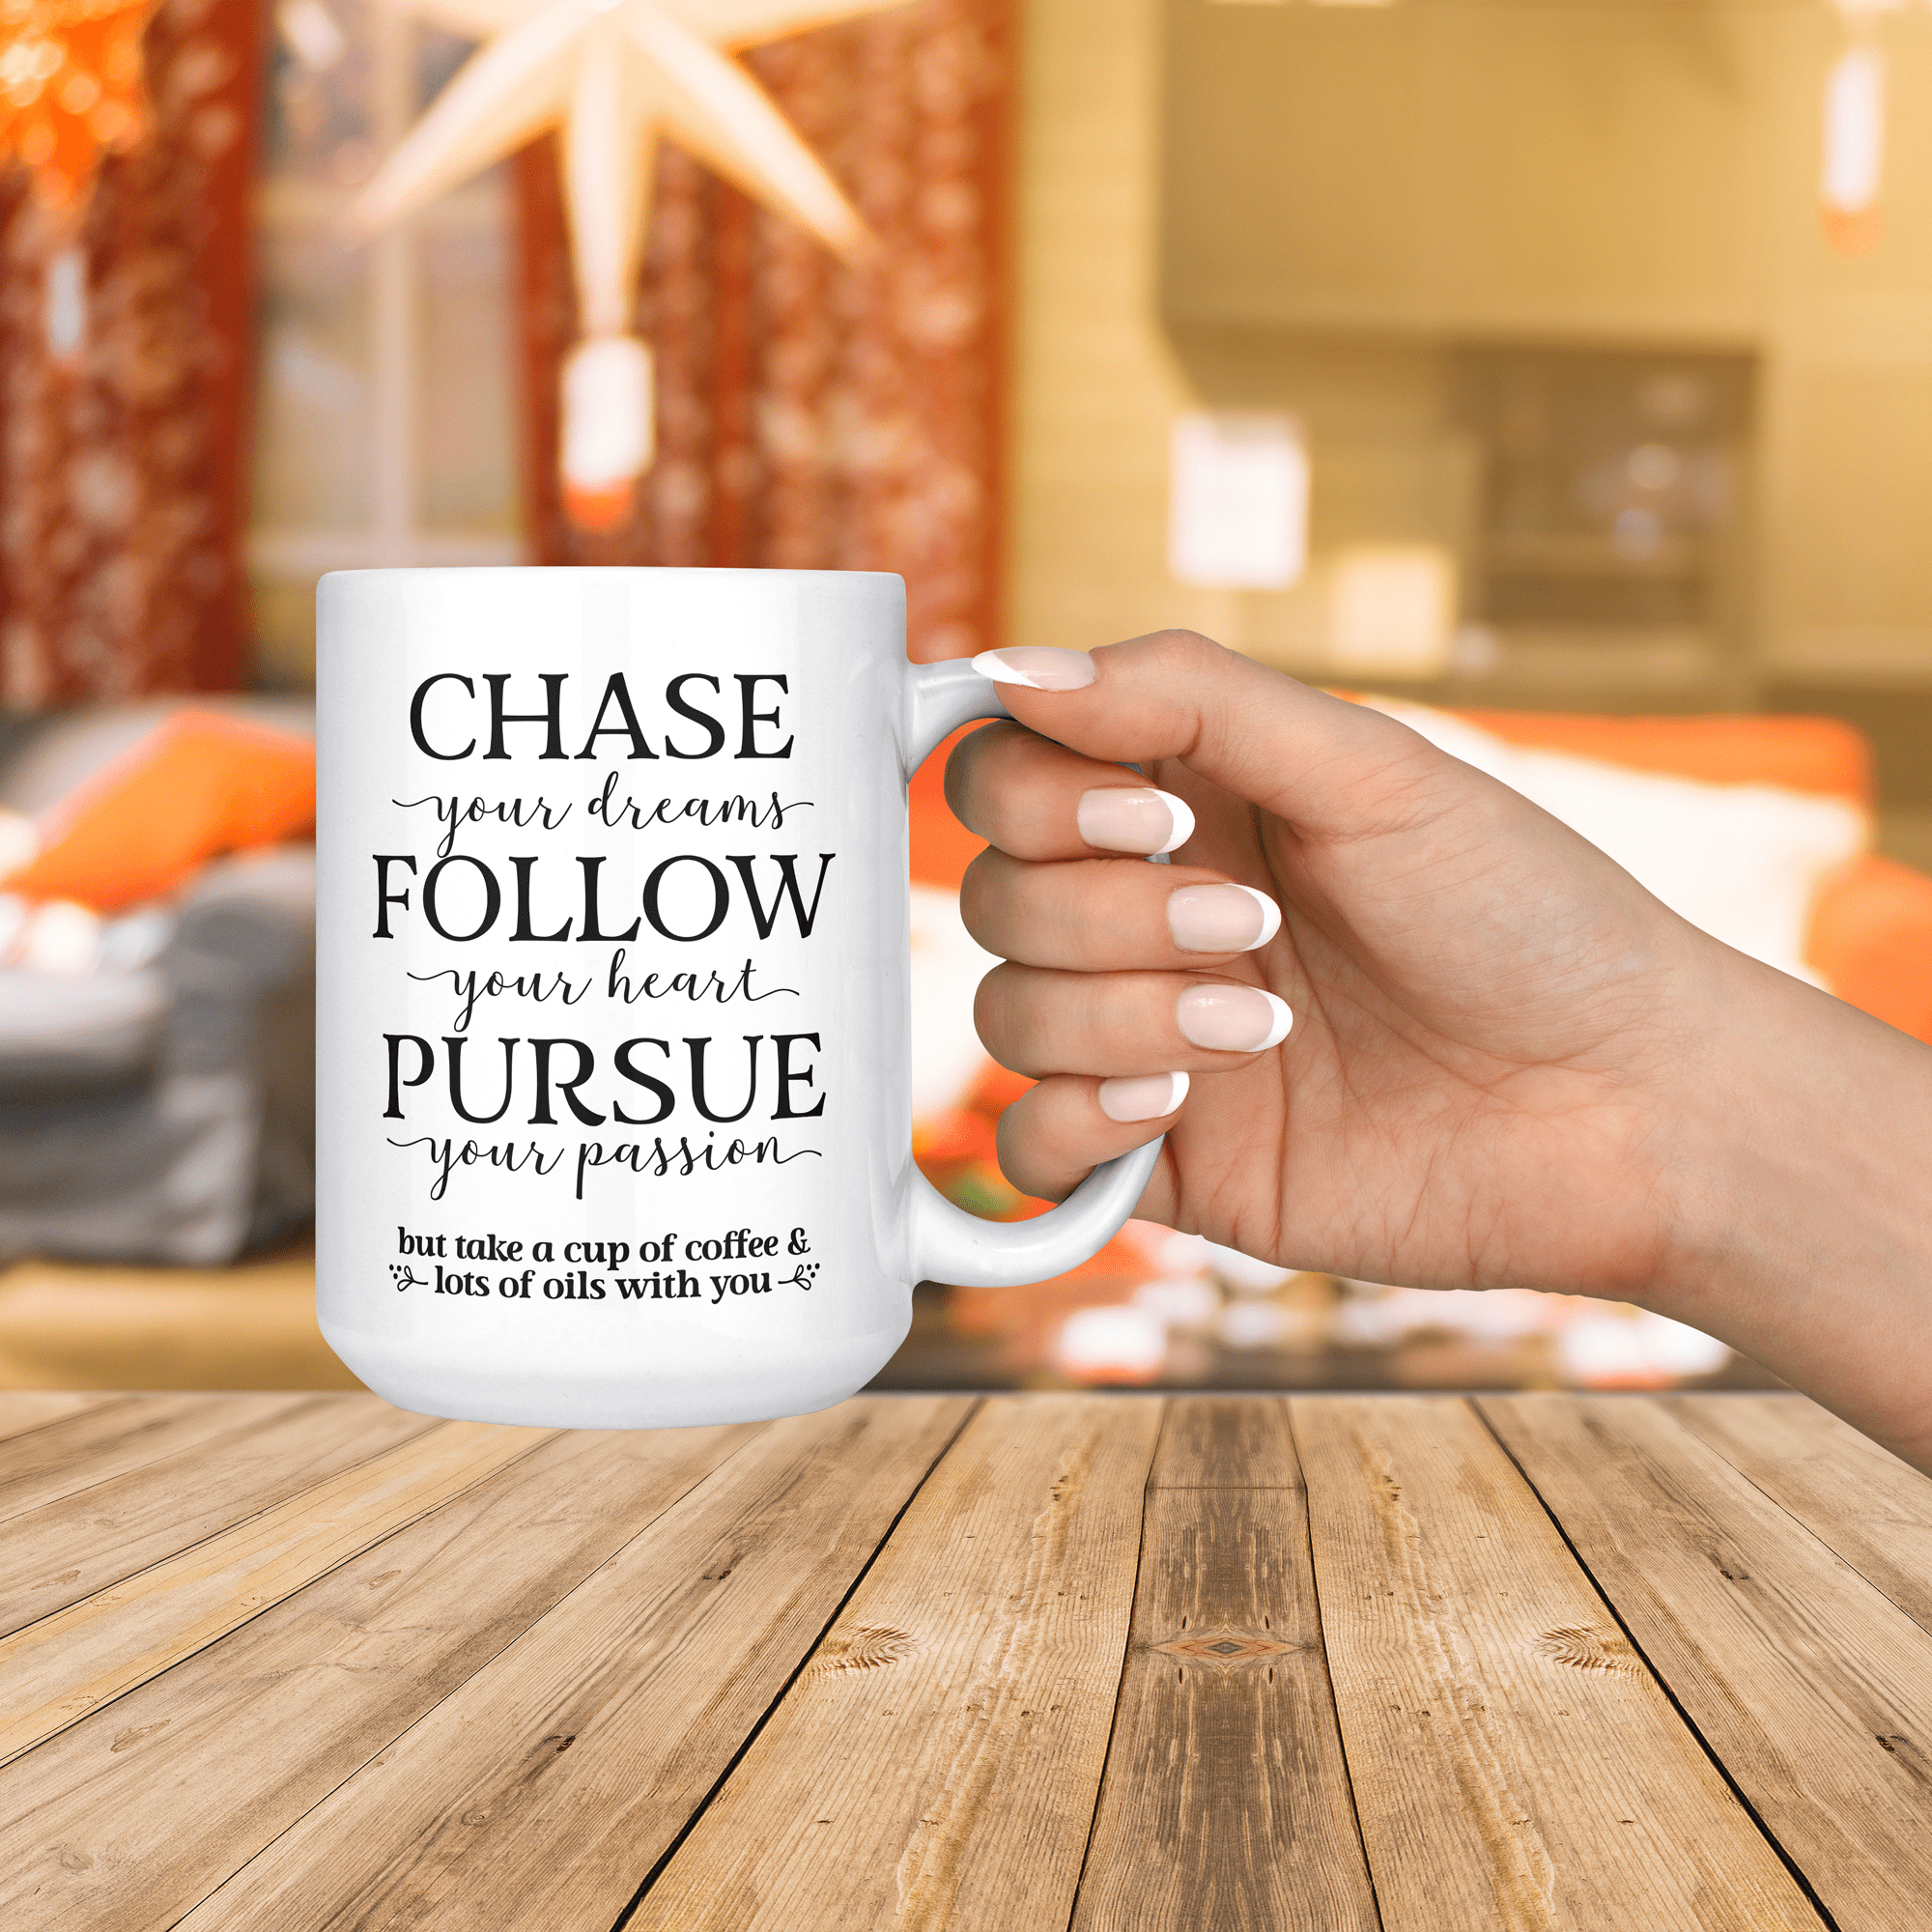 15oz Mug Chase Follow Pursue But Mugs Essential Oil Accessories Dreaming Of You